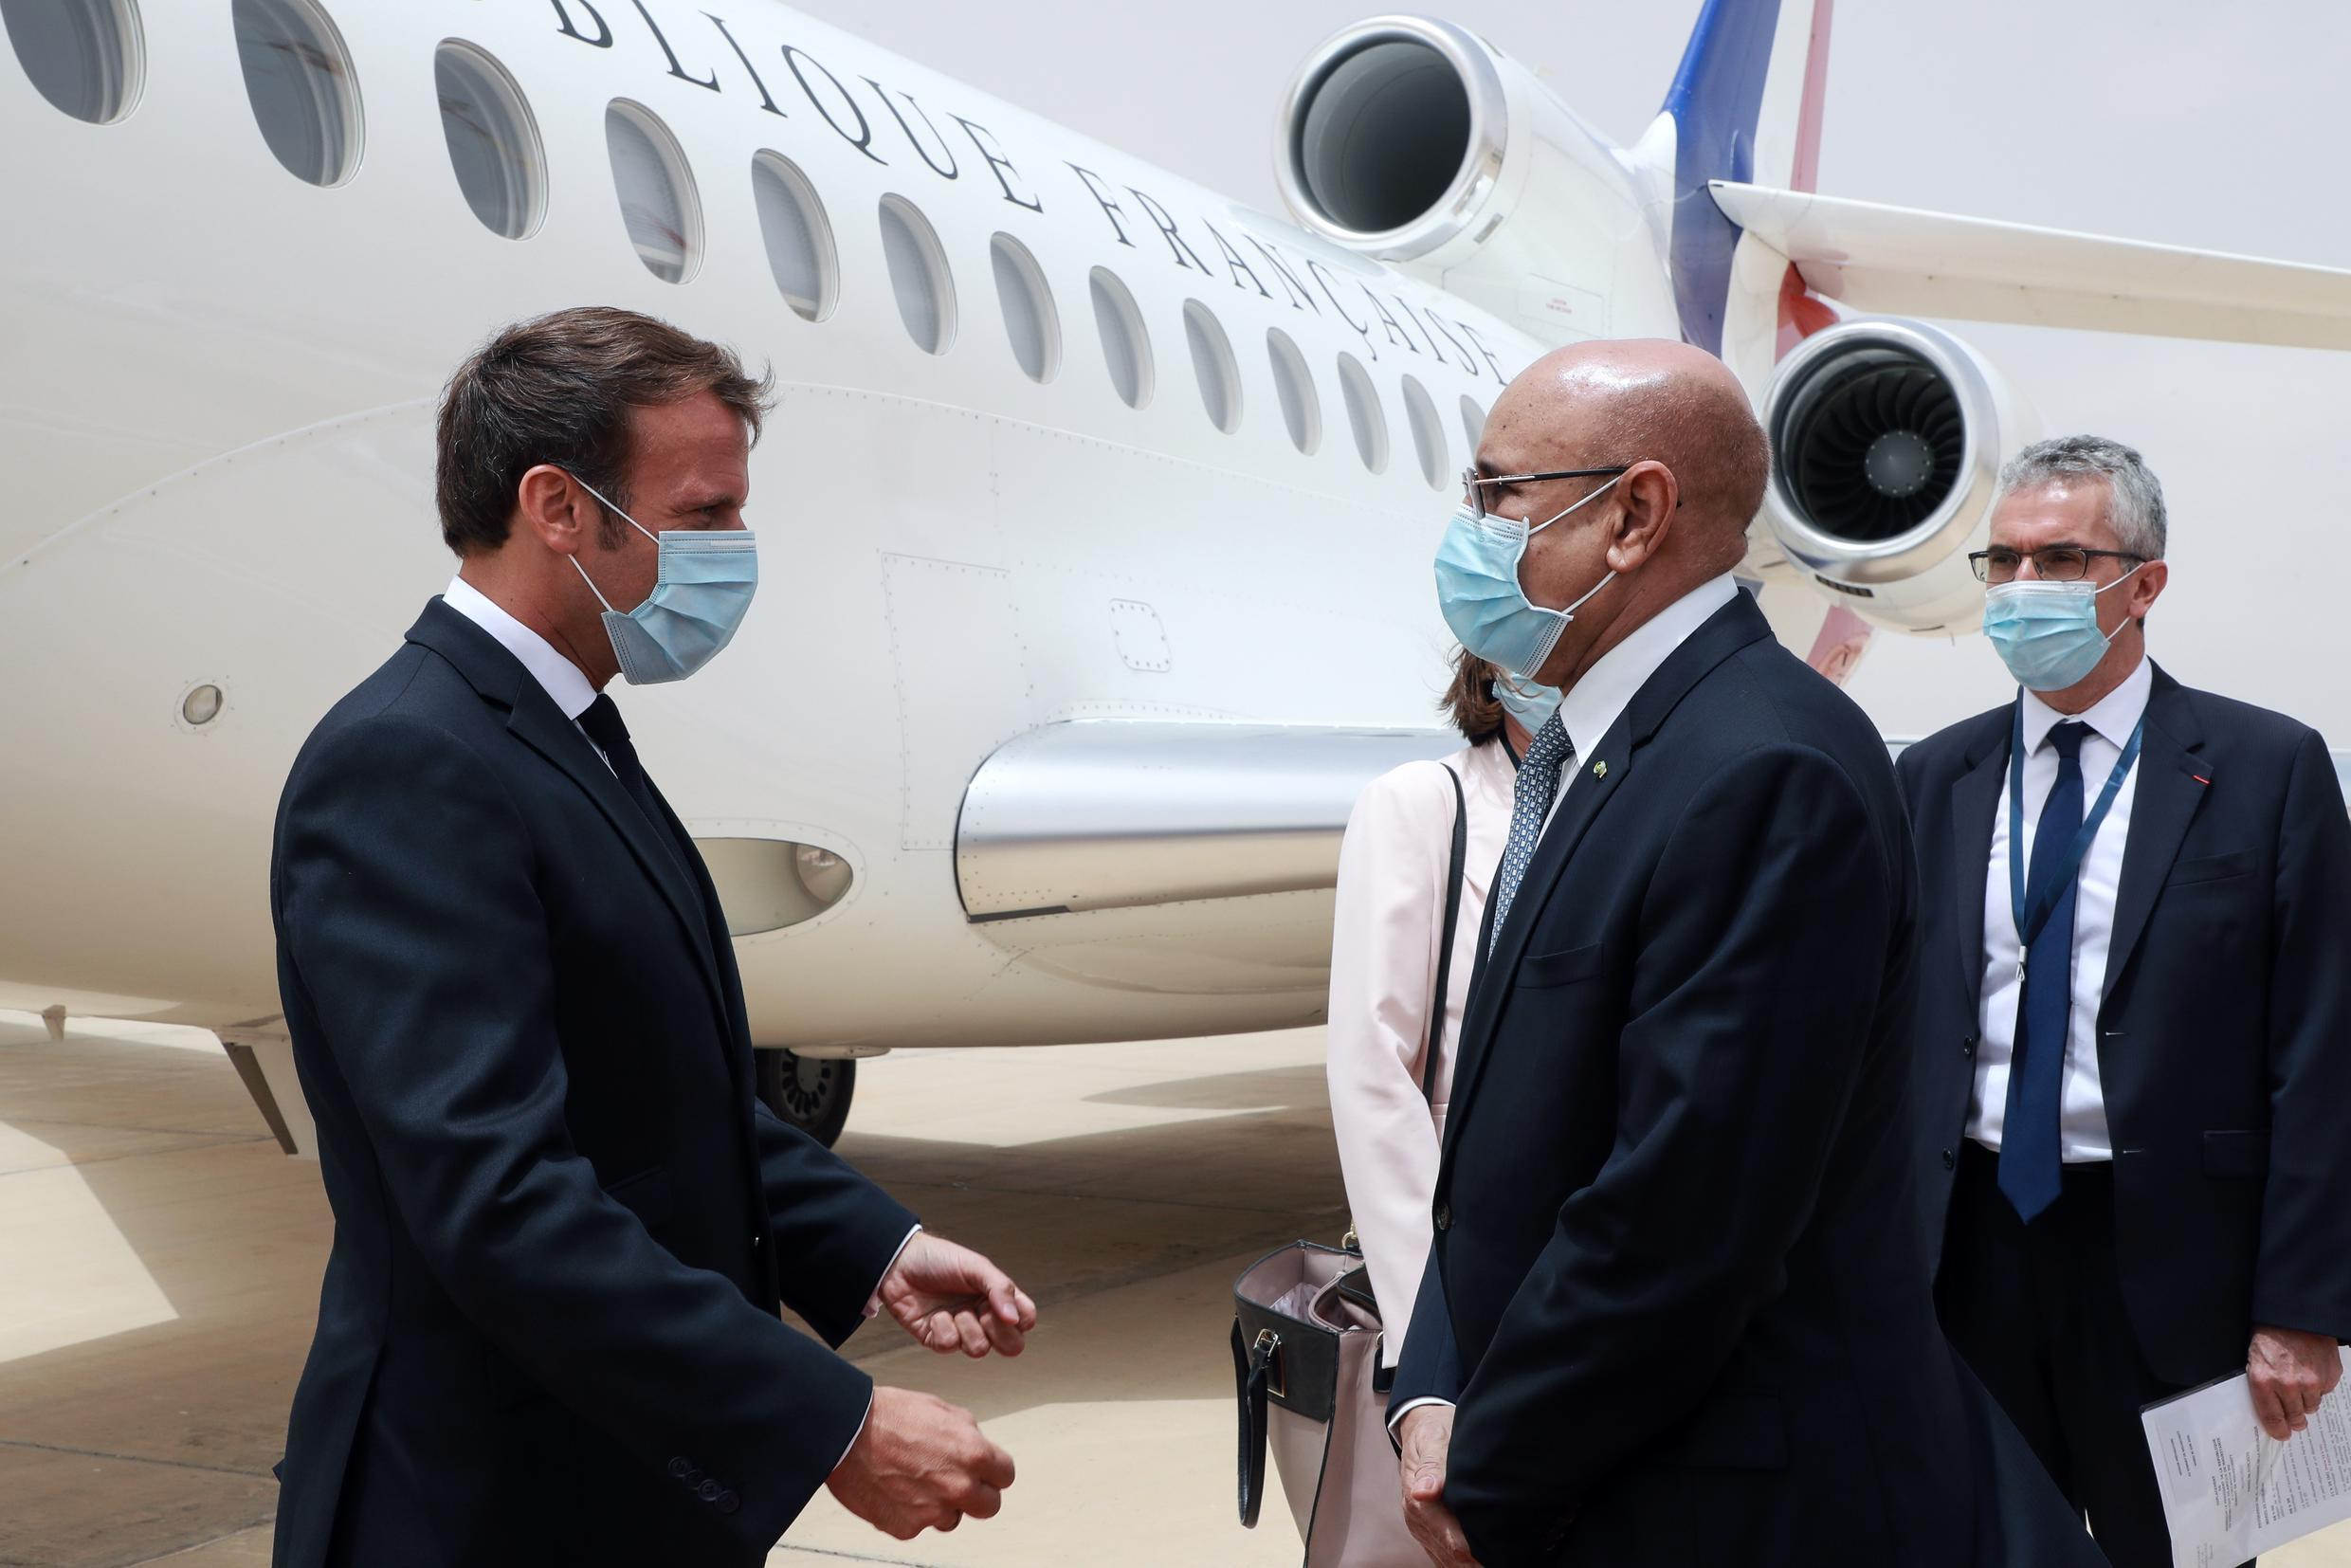 French President Emmanuel Macron is greeted by his Mauritanian counterpart Mohamed Ould Ghazouani at Nouakchott on June 30, 2020.